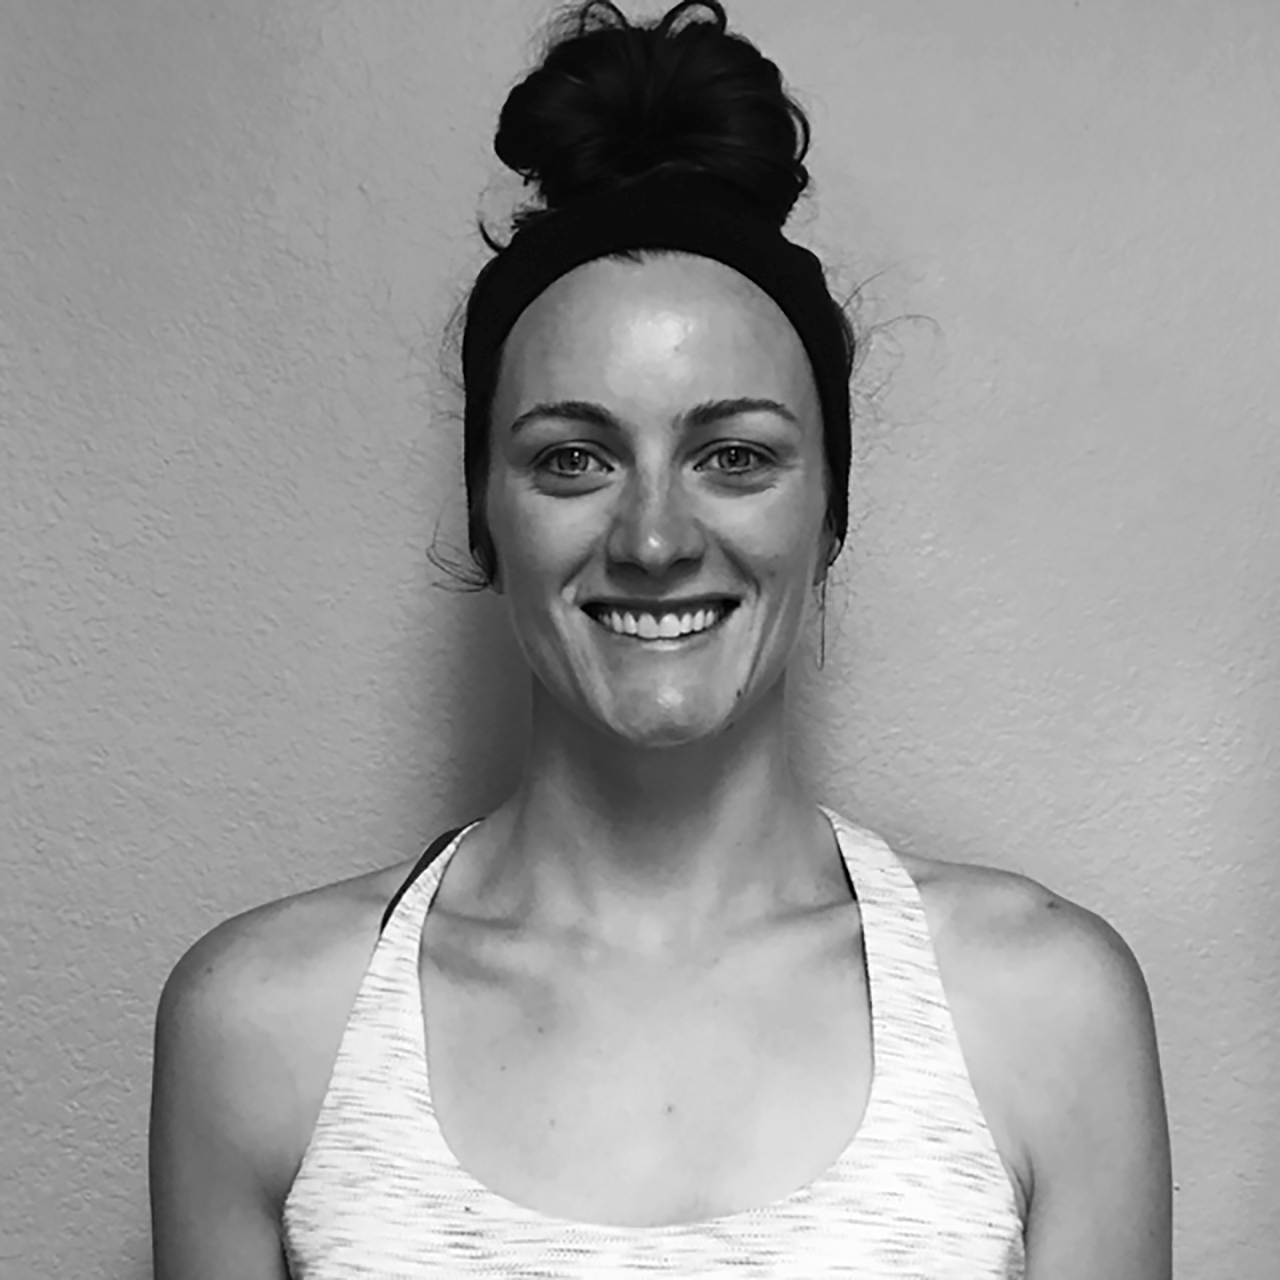 KAITLYN MCGOVERN Community Teacher / Sub   For years, Kaitlyn has practiced various styles of yoga to deal with chronic pains associated with her active lifestyle. A transplant from Boston, she moved to Vail in January of 2018 and quickly fell in love with the Baptiste methodology at Revolution Power Yoga. She jumped right in to the community at Revolution, completing her 200-hour teaching certification with Revolution in May of 2018. Kaitlyn uses her teaching to inspire transformation in others and help them to discover their full potential both on and off the mat. When not practicing, Kaitlyn enjoys hiking, skiing, gardening, traveling, live music, and playing with her pup, Sully.